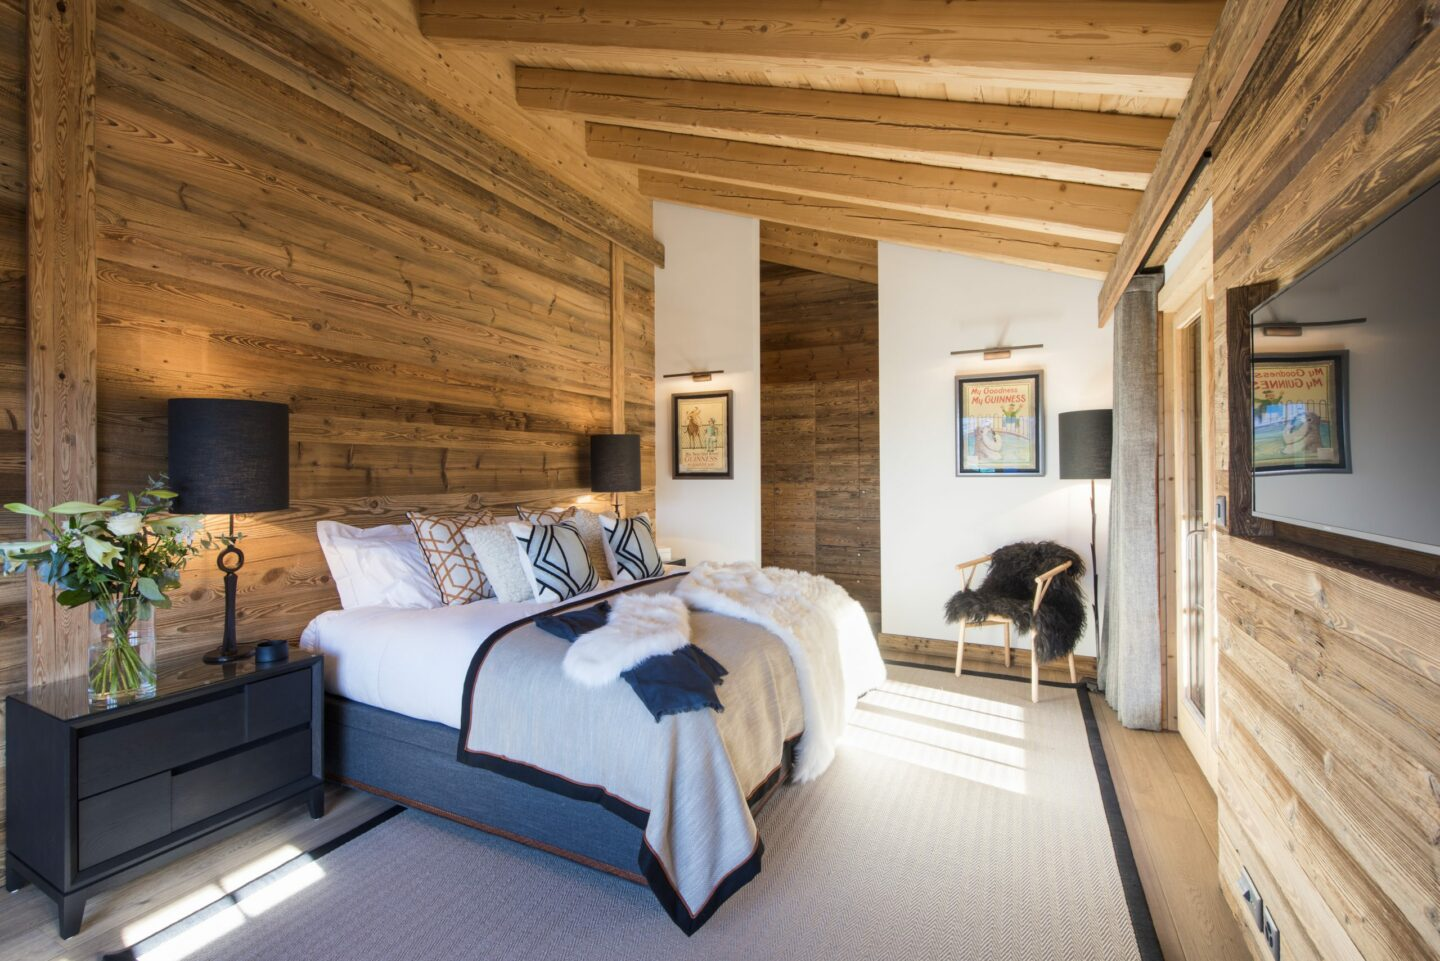 Master bedroom with private terrace at Chalet Daphne in Verbier